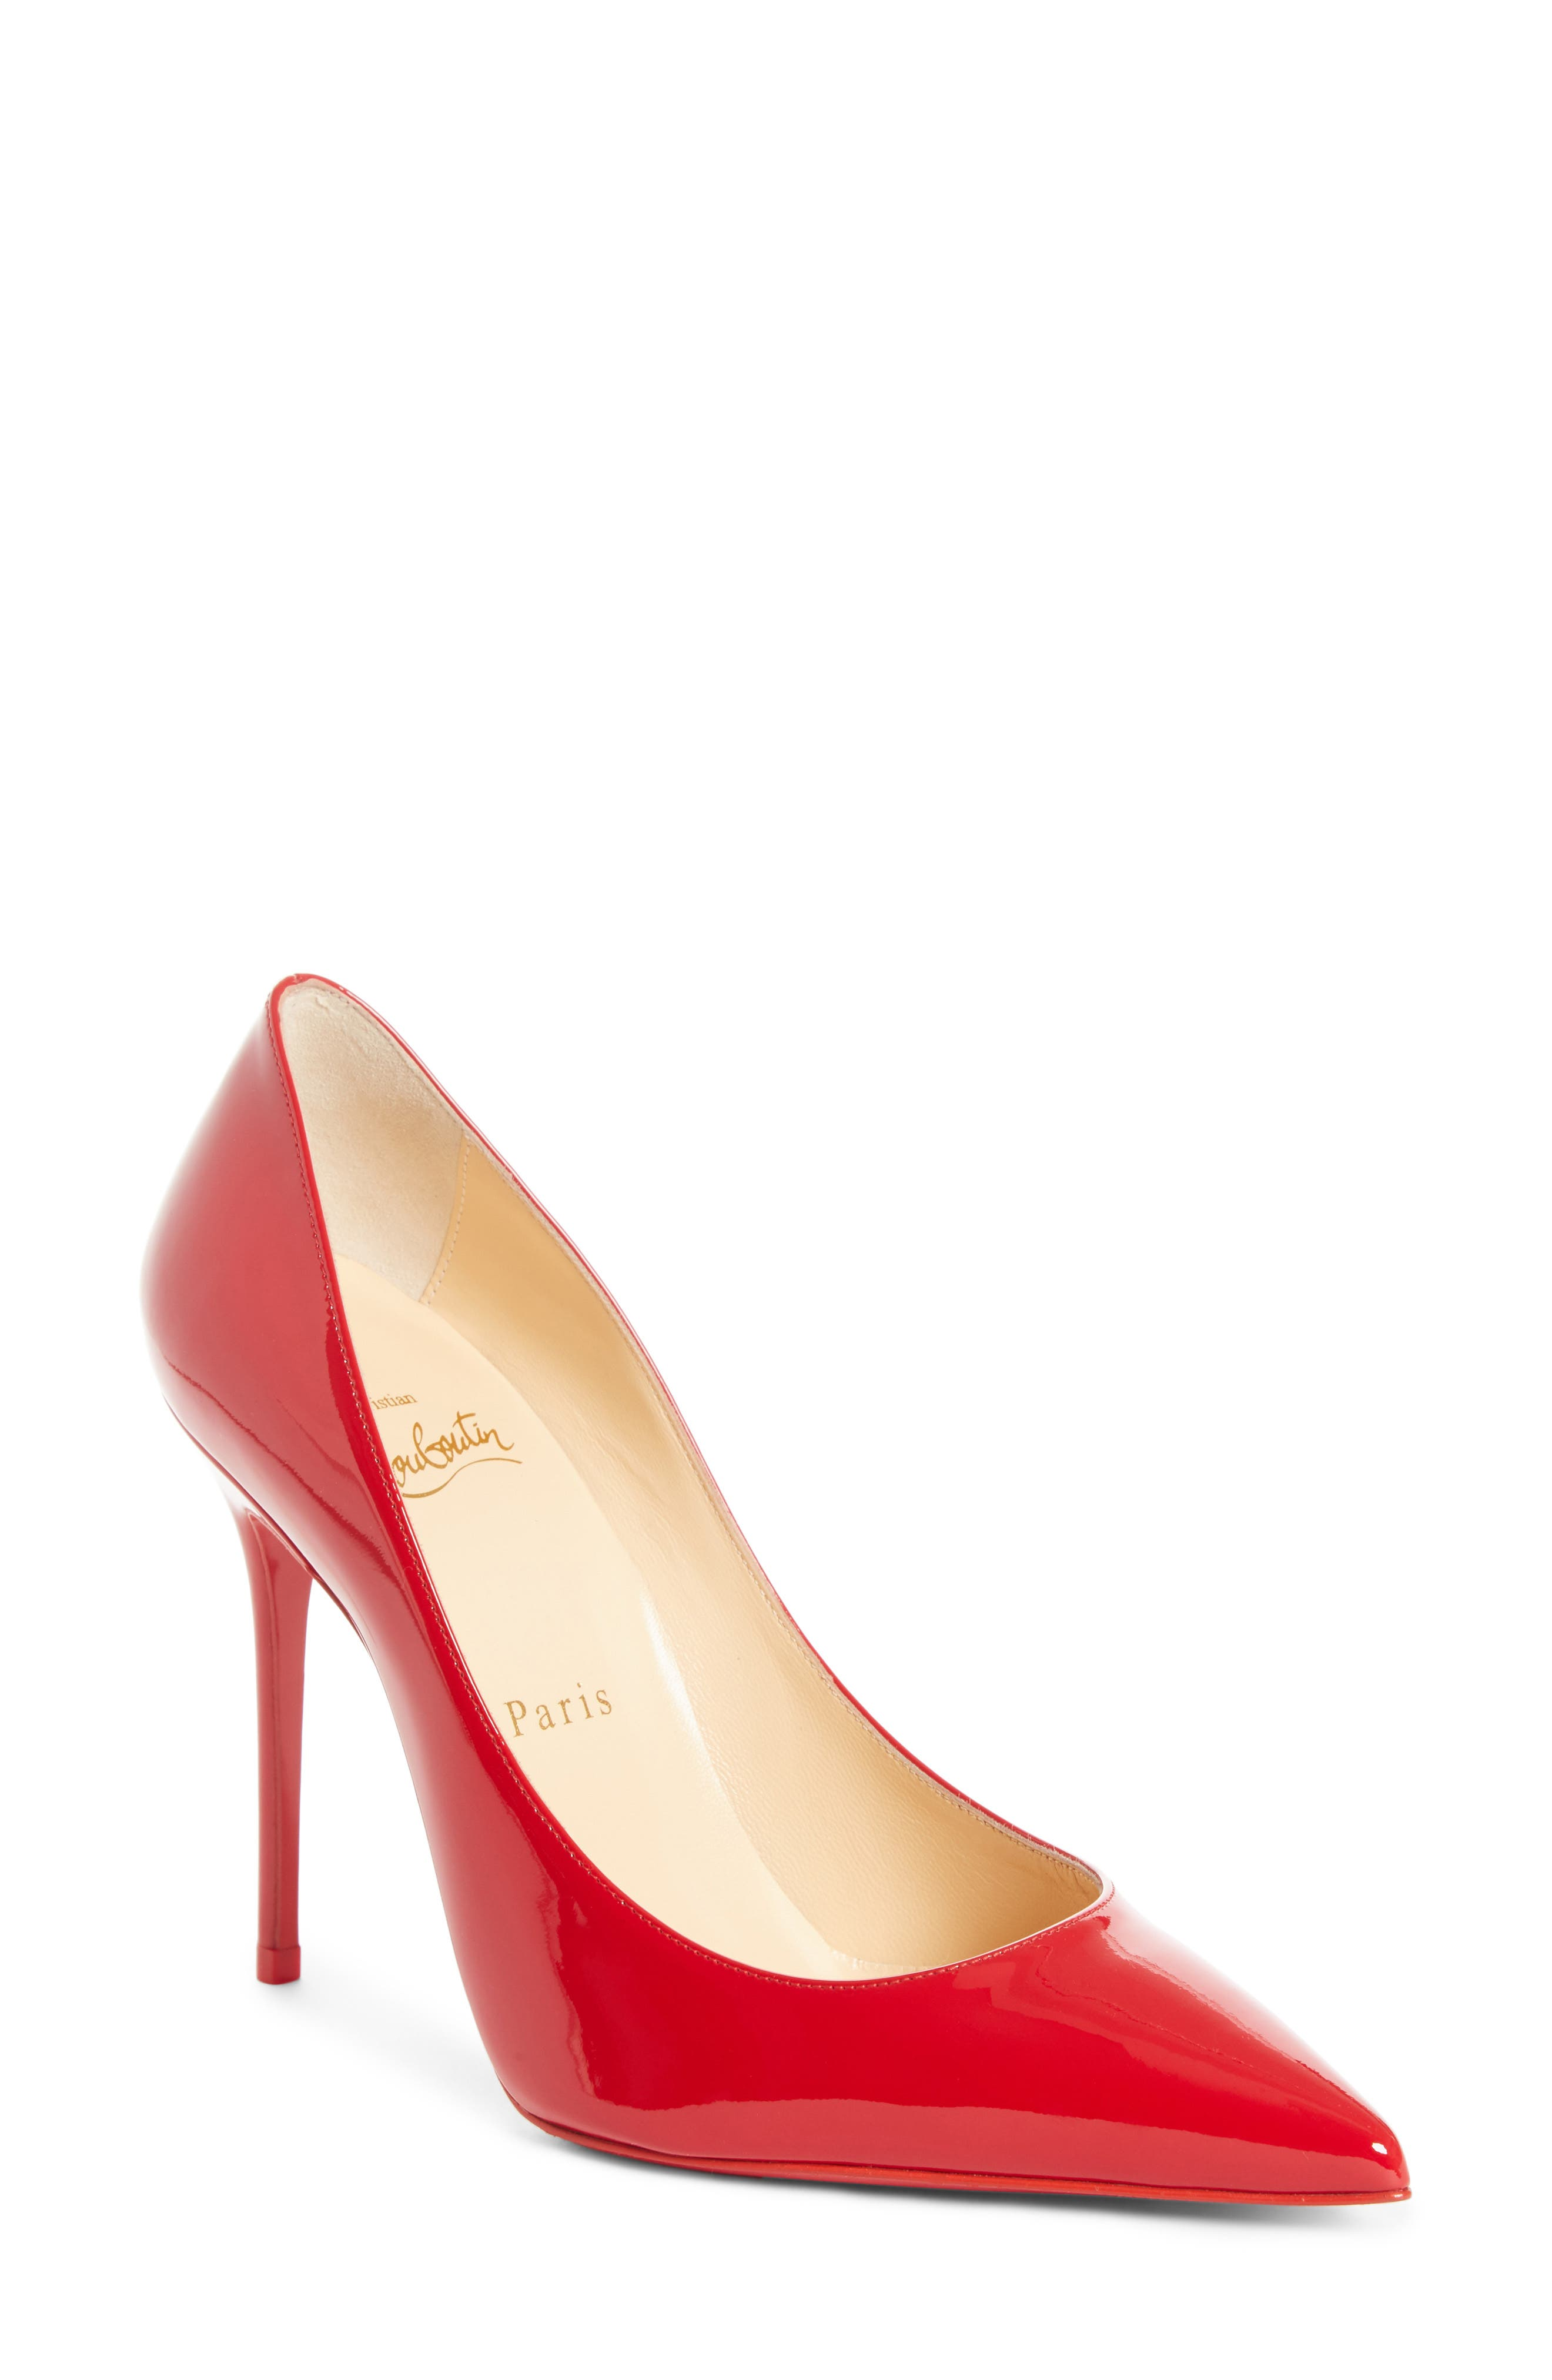 'Decollete' Pointy Toe Pump,                         Main,                         color, LOUBI RED